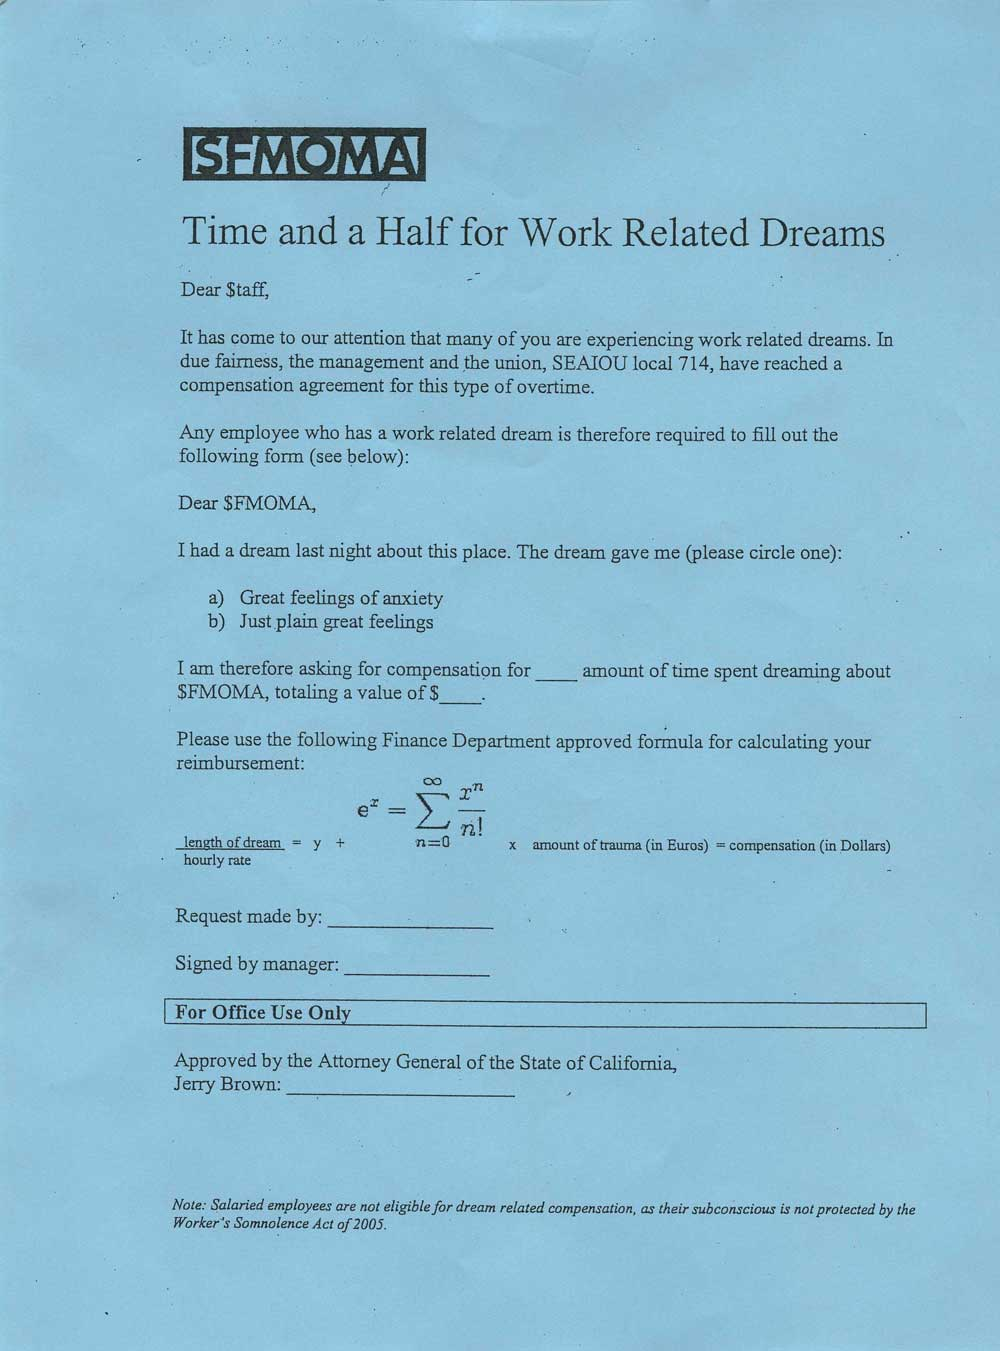 Time and a Half for Work-Related Dreams